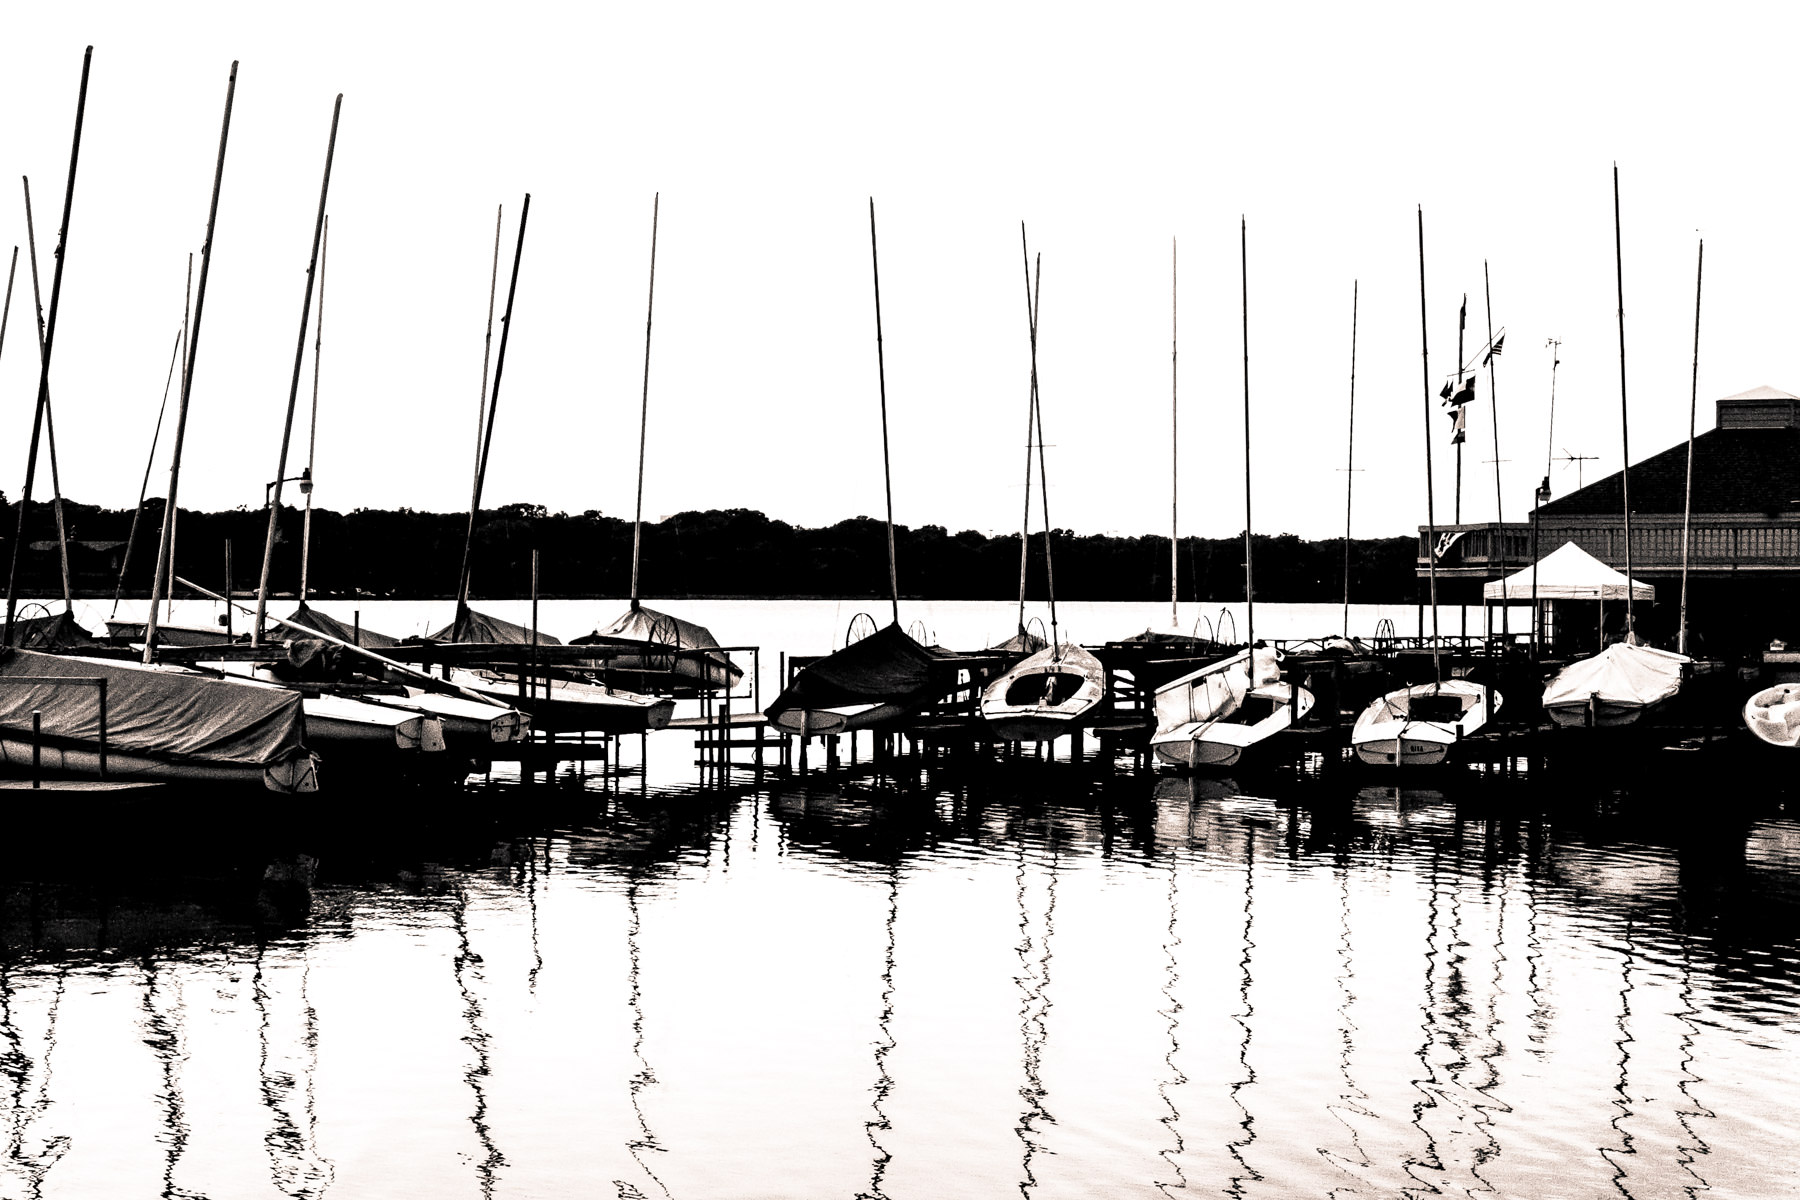 Sail boats waiting to be put to sea (or lake, in this case) at White Rock Lake in Dallas.